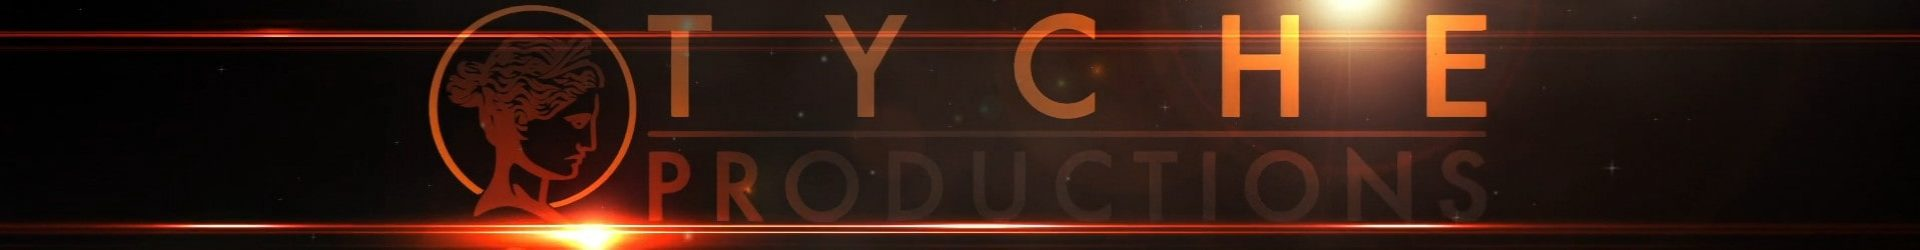 Tyche Productions srl